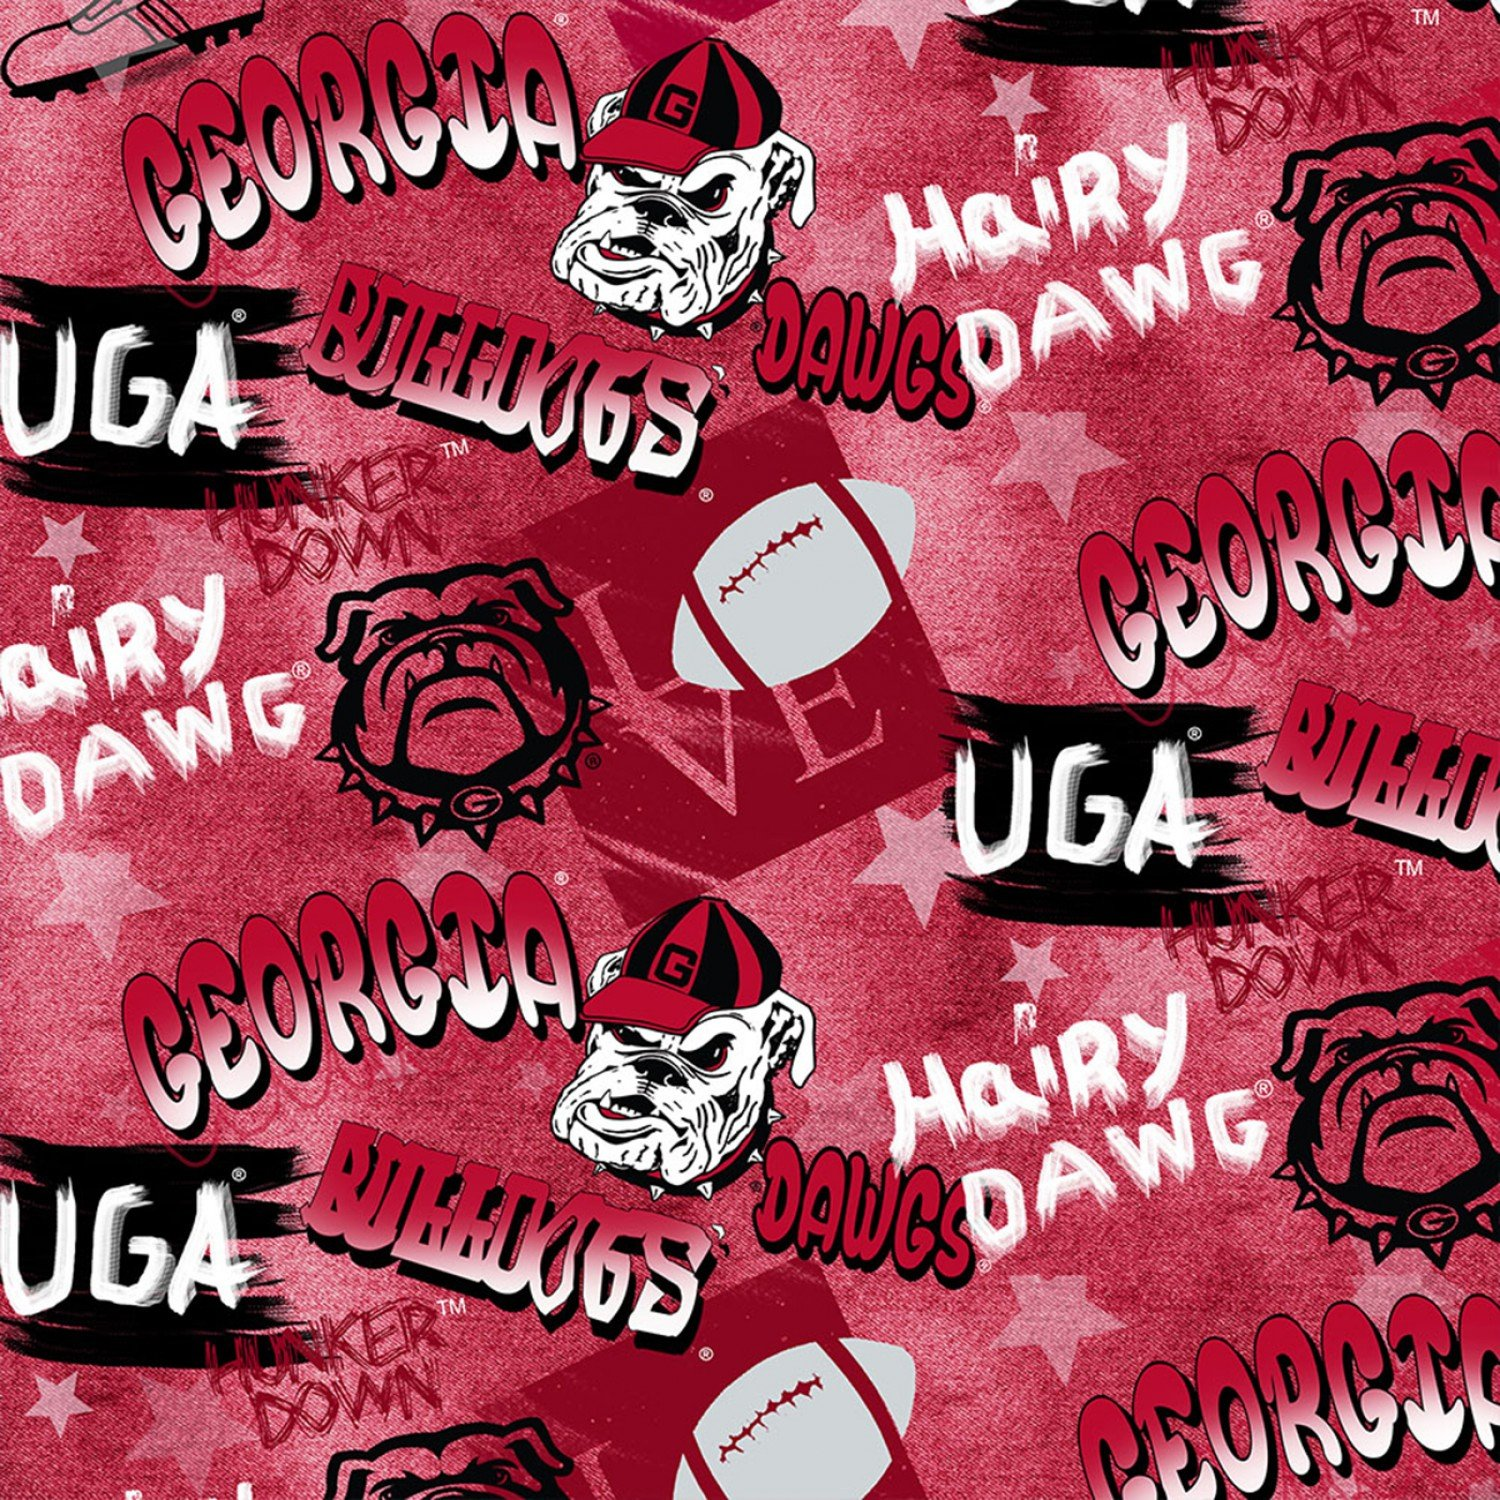 Georgia Bulldogs Graffiti